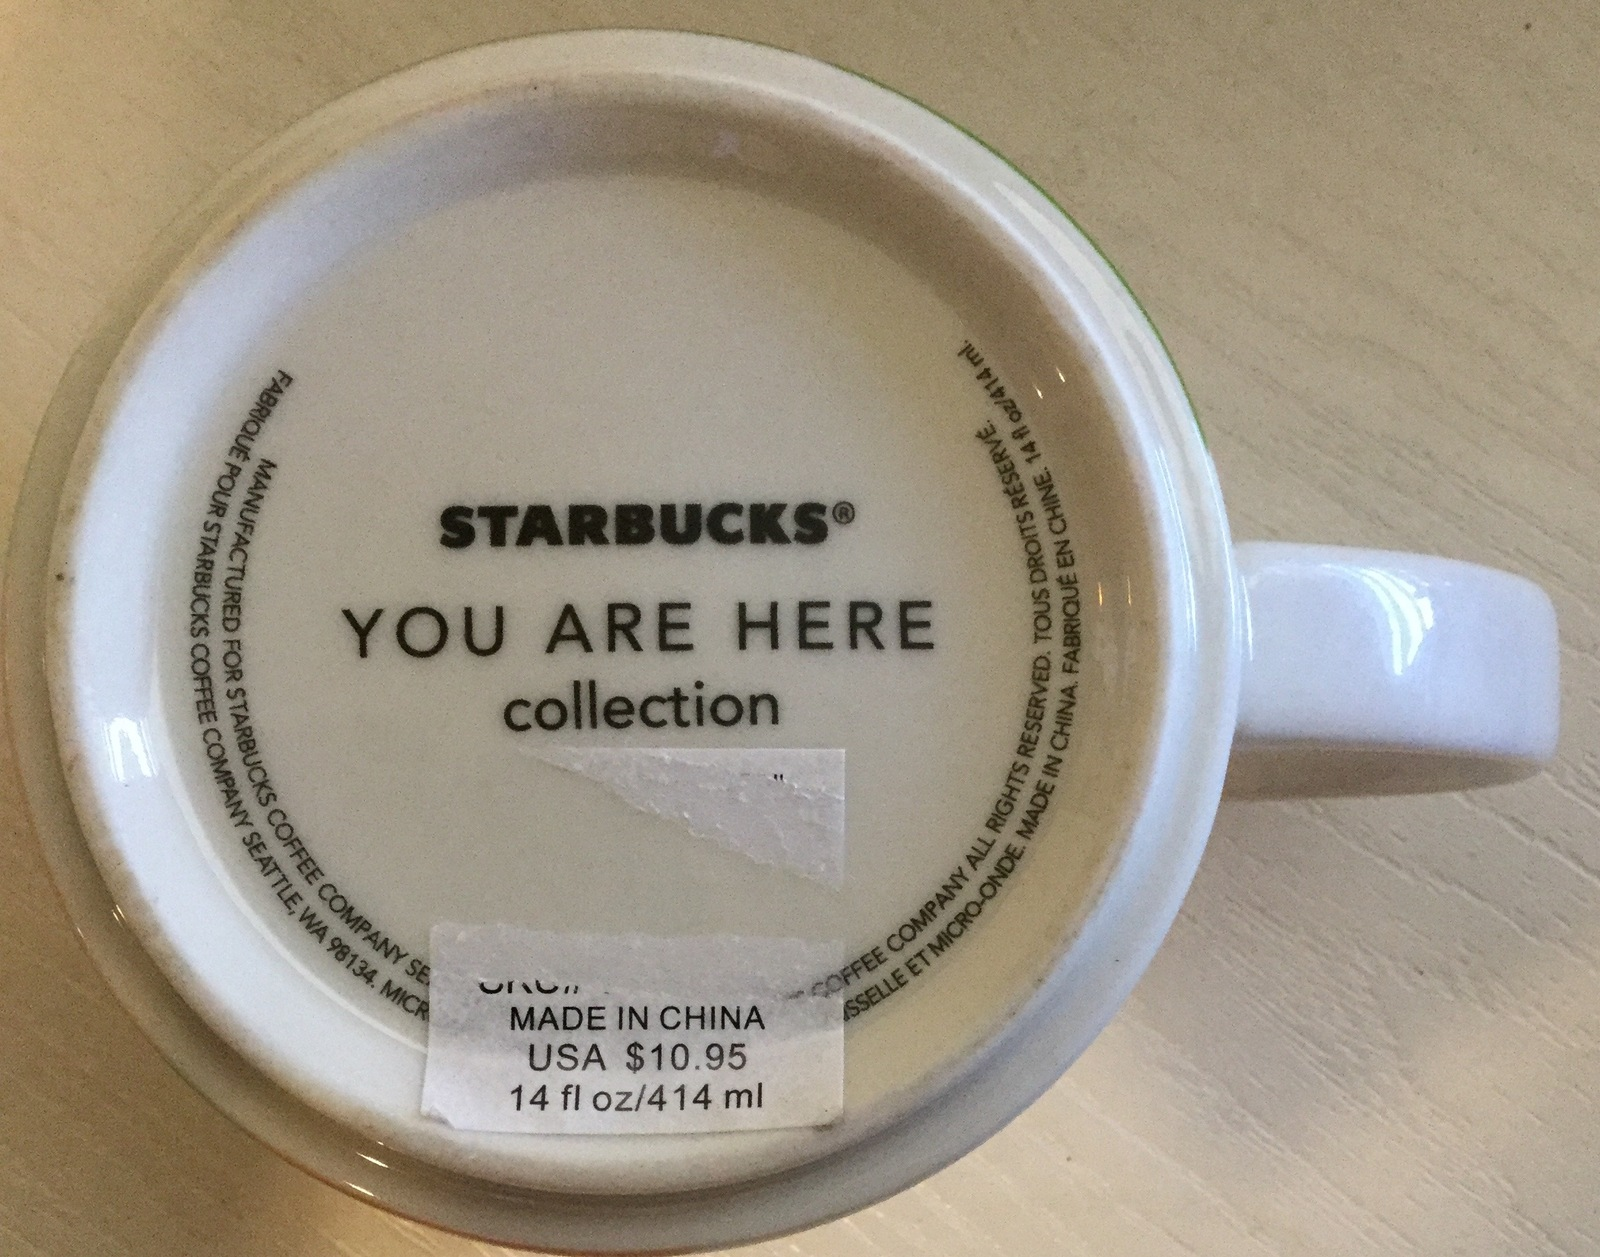 starbucks 14 ounce you are here collection dallas from 2013 mugs. Black Bedroom Furniture Sets. Home Design Ideas